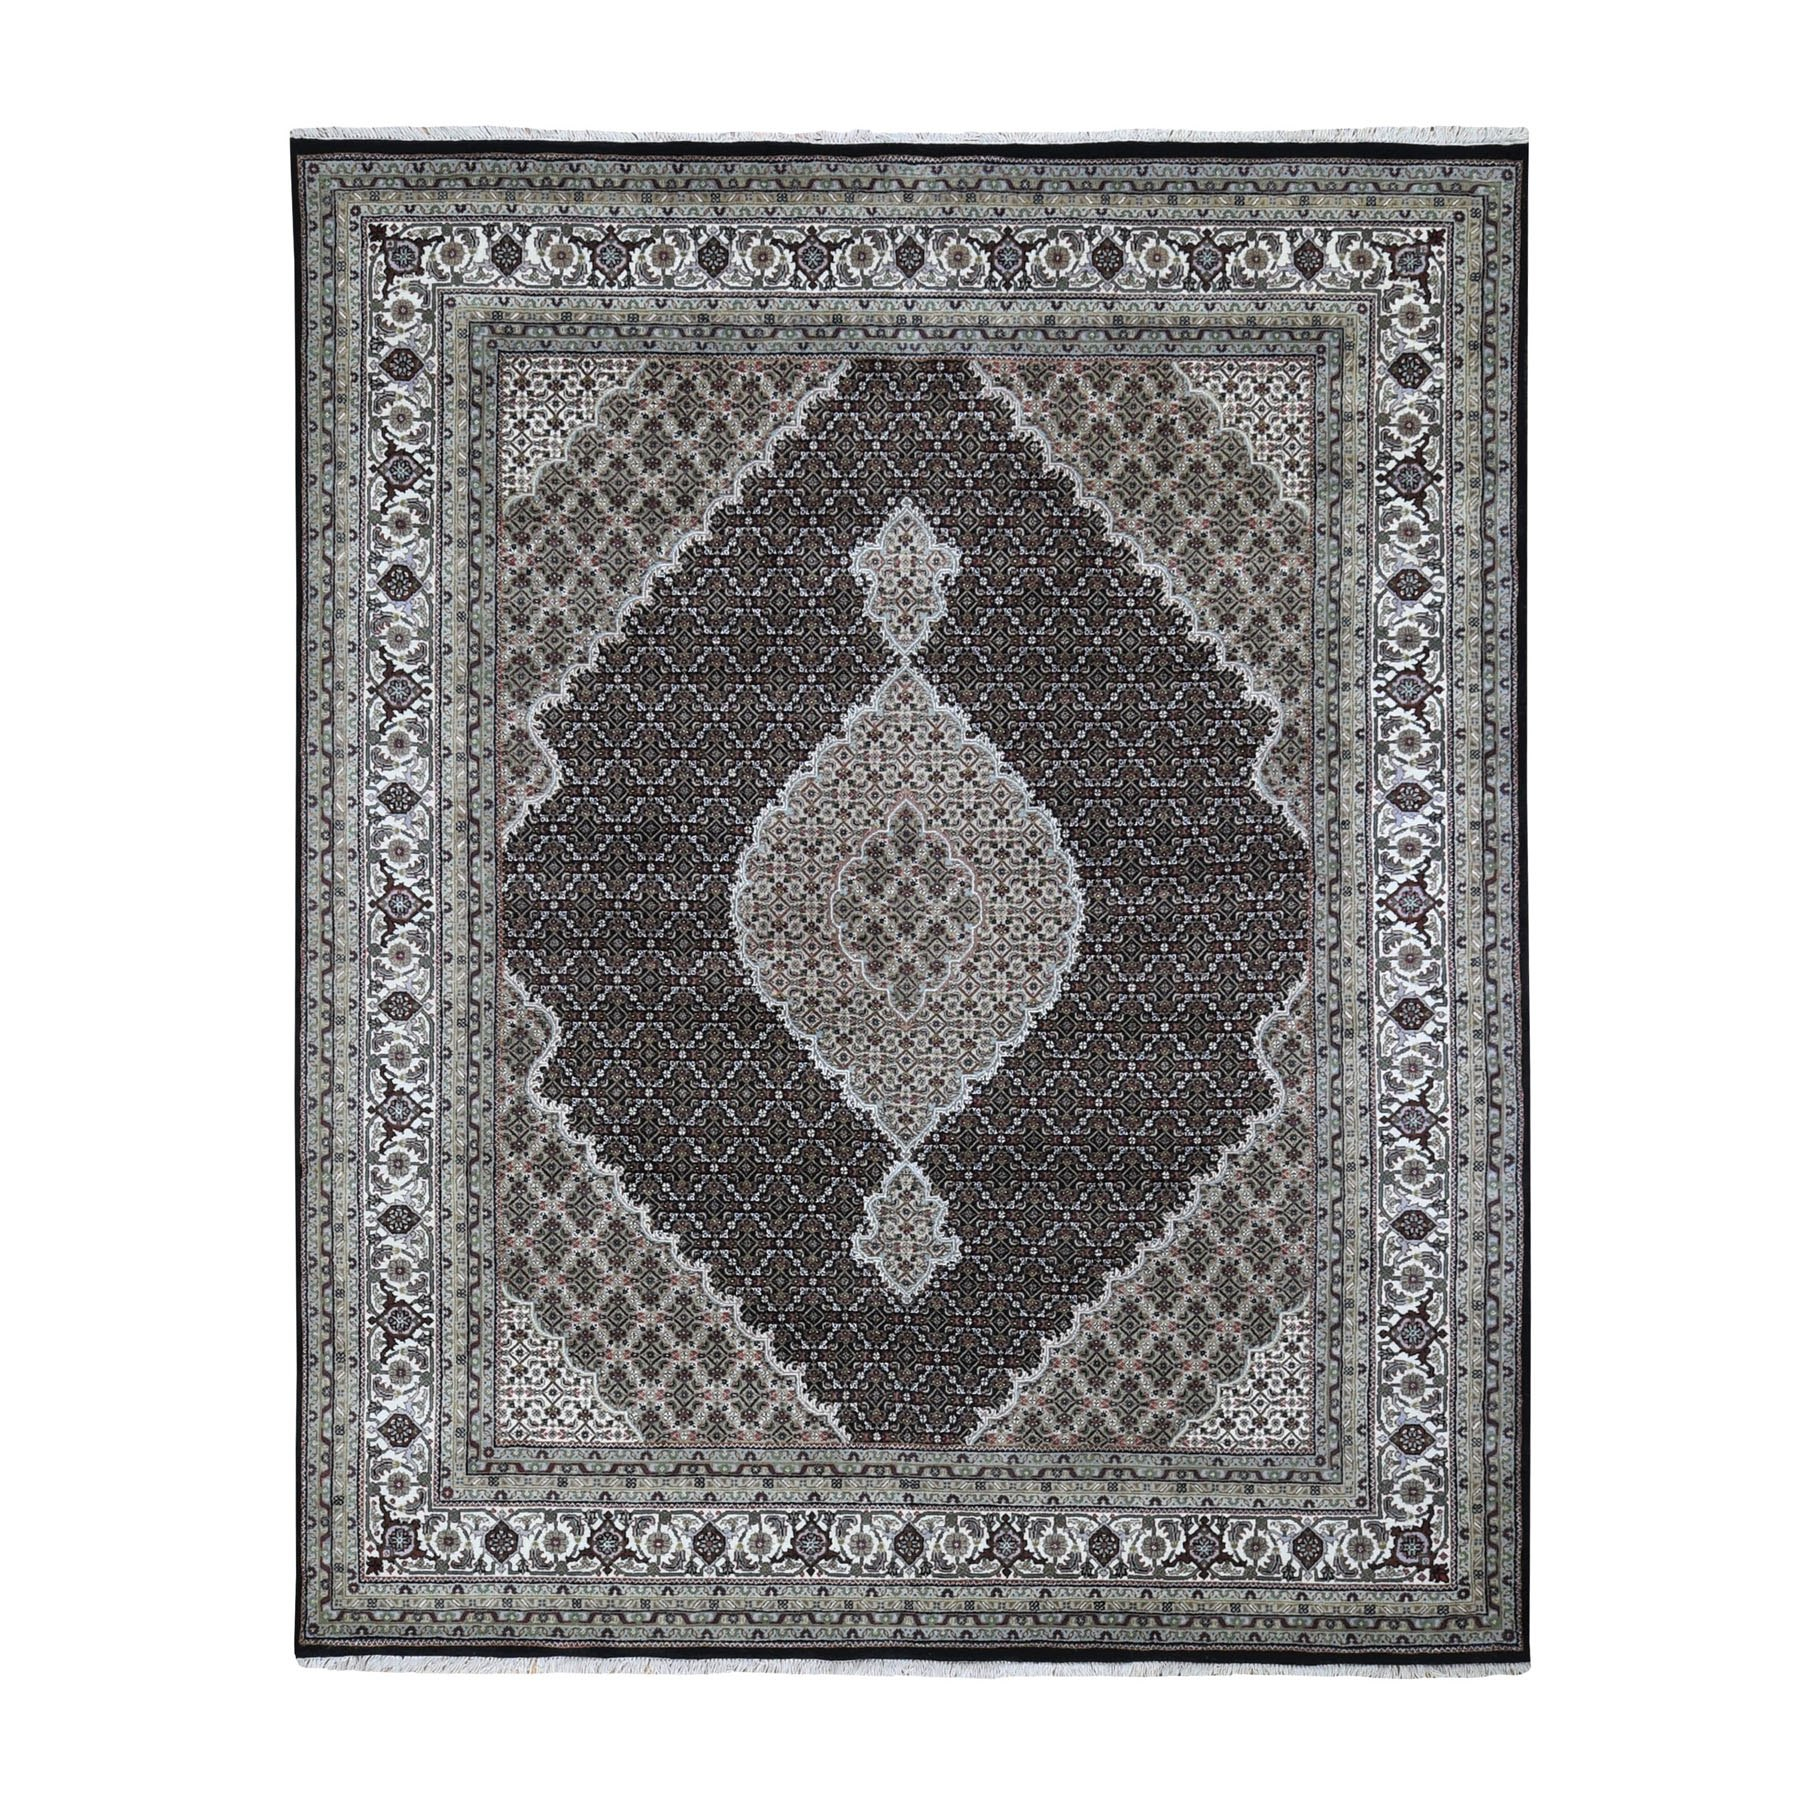 "8'1""x9'10"" Black Tabriz Mahi Fish Design Wool And Silk Hand Woven Oriental Rug"